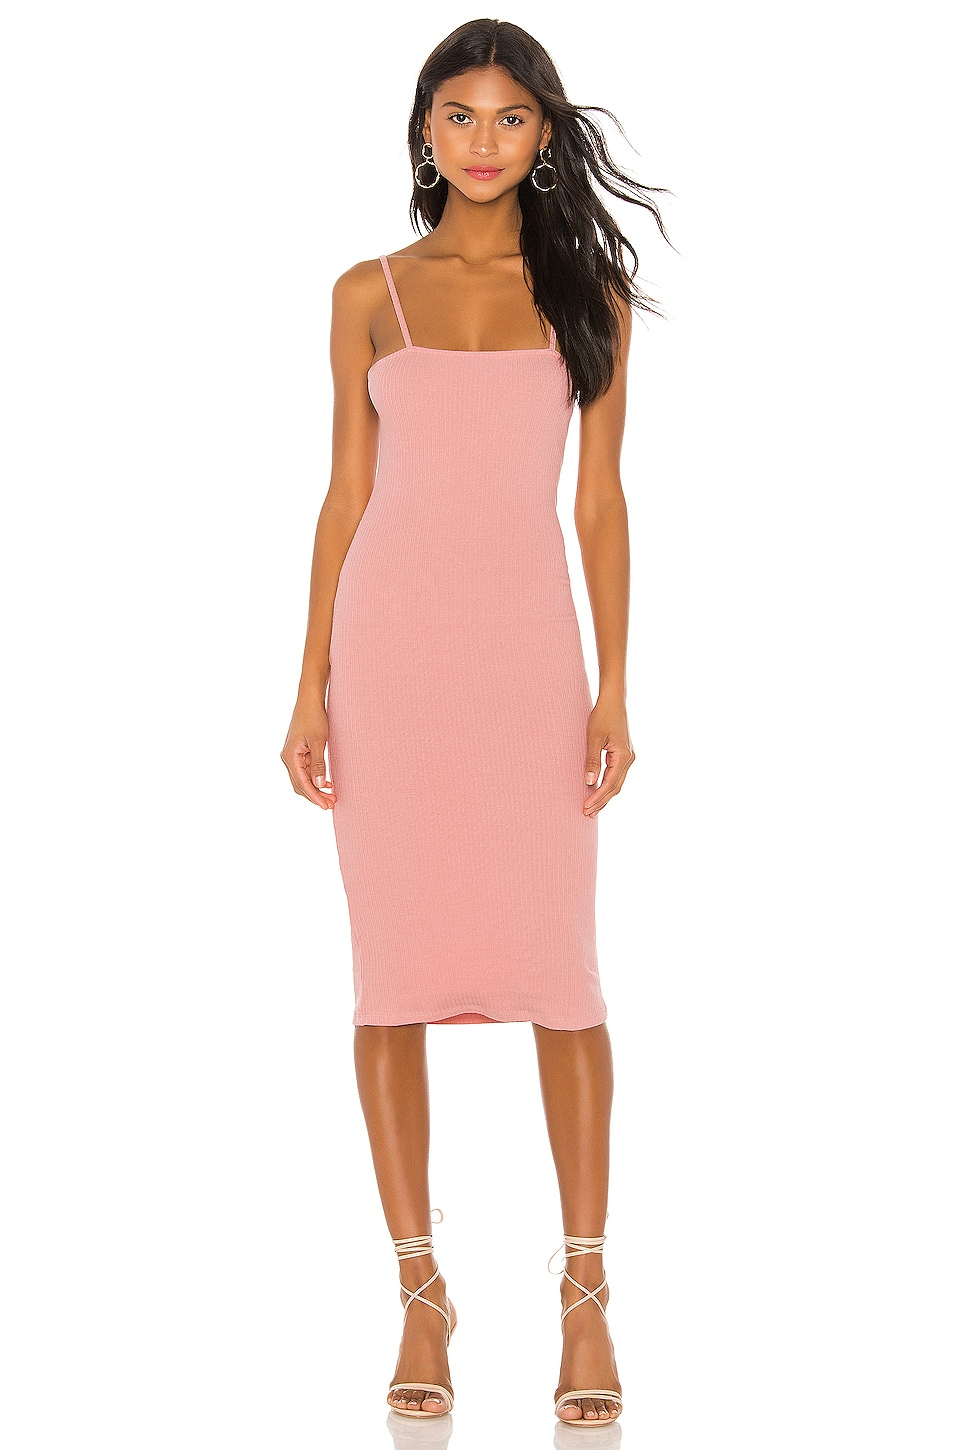 Privacy Please Tess Midi Dress in Rose Pink